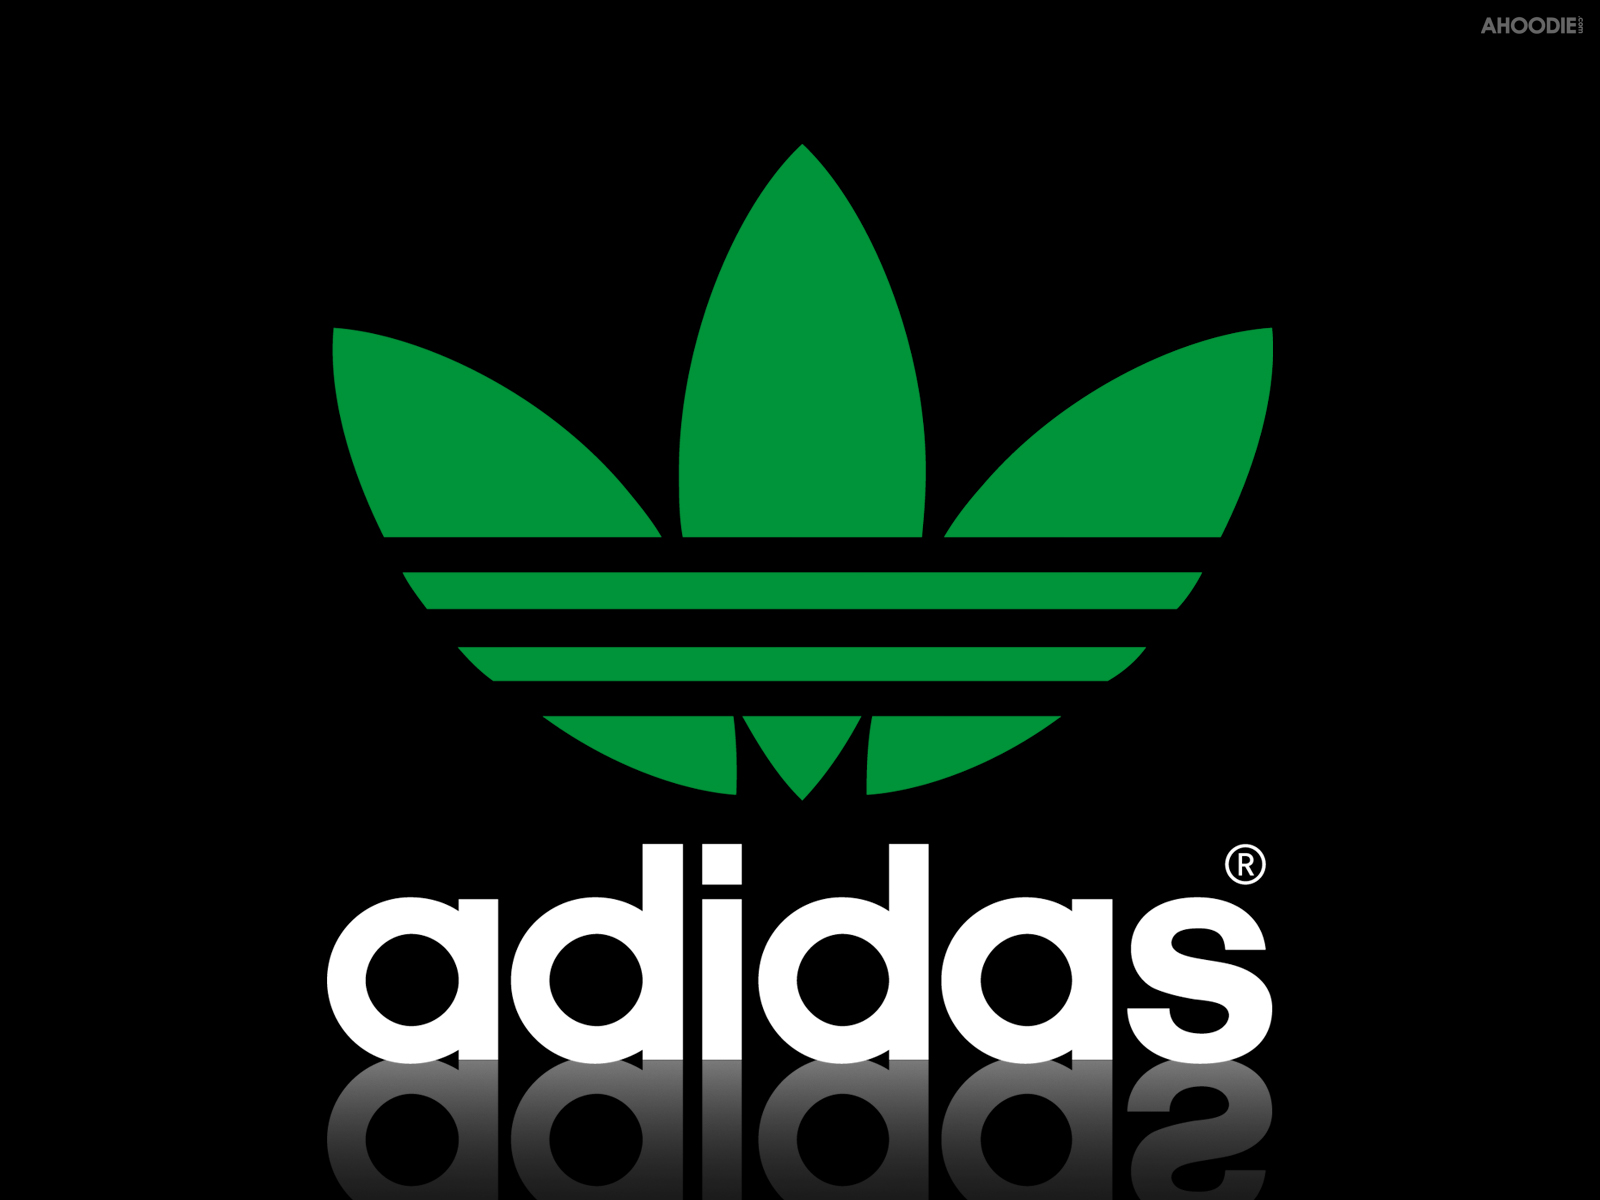 adidas hd wallpaper wallpupcom